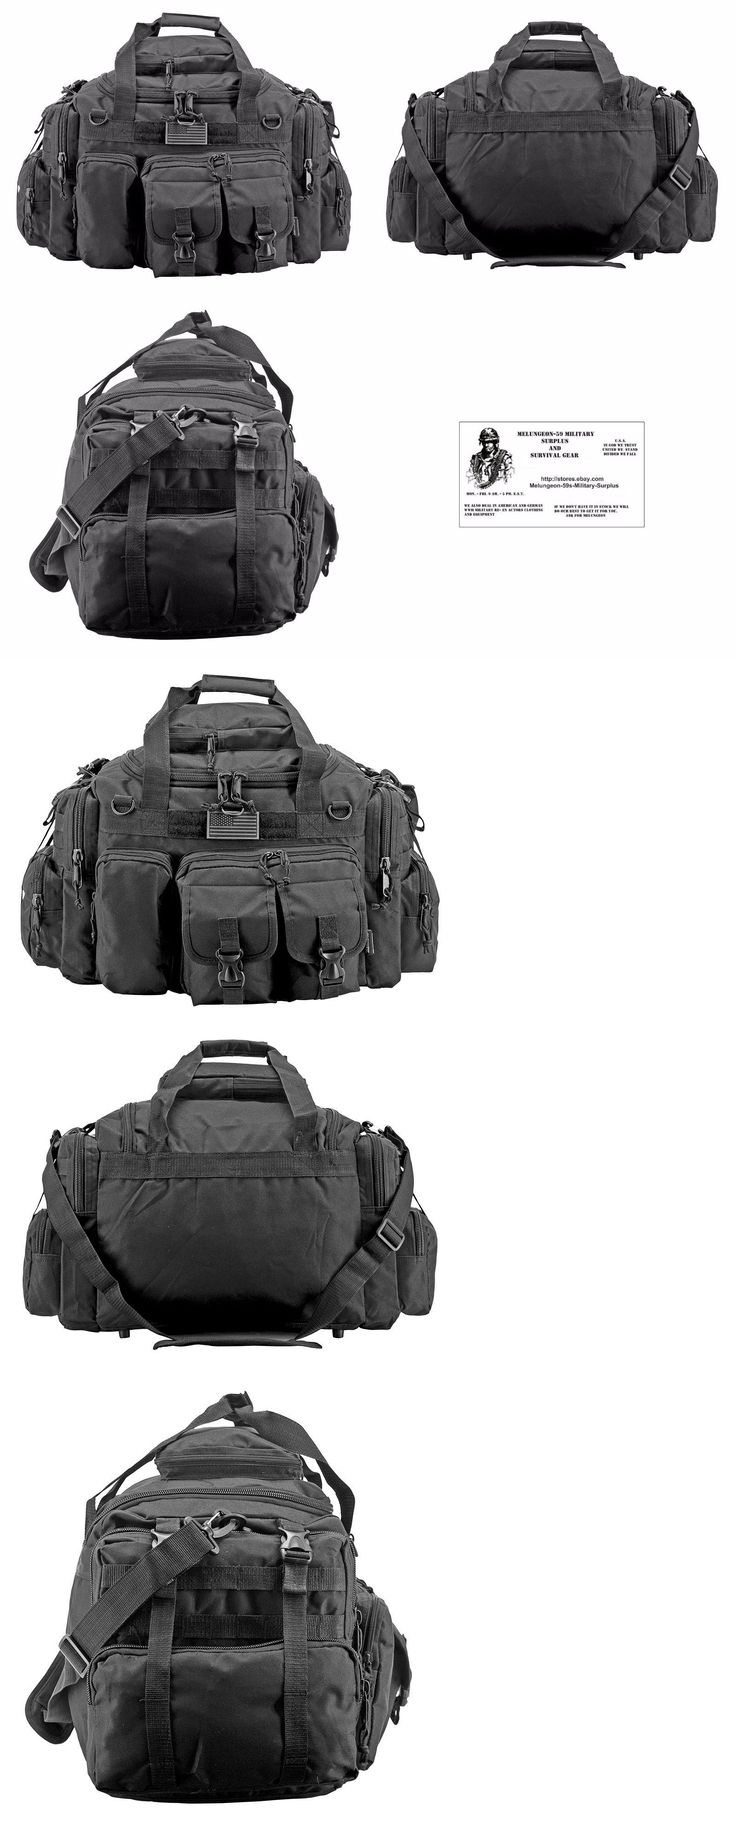 Other Emergency Gear 181415: The Humvee Duffel Bag Bug Out Bag Tactical Military Survival Gear - Black -> BUY IT NOW ONLY: $44.99 on eBay!